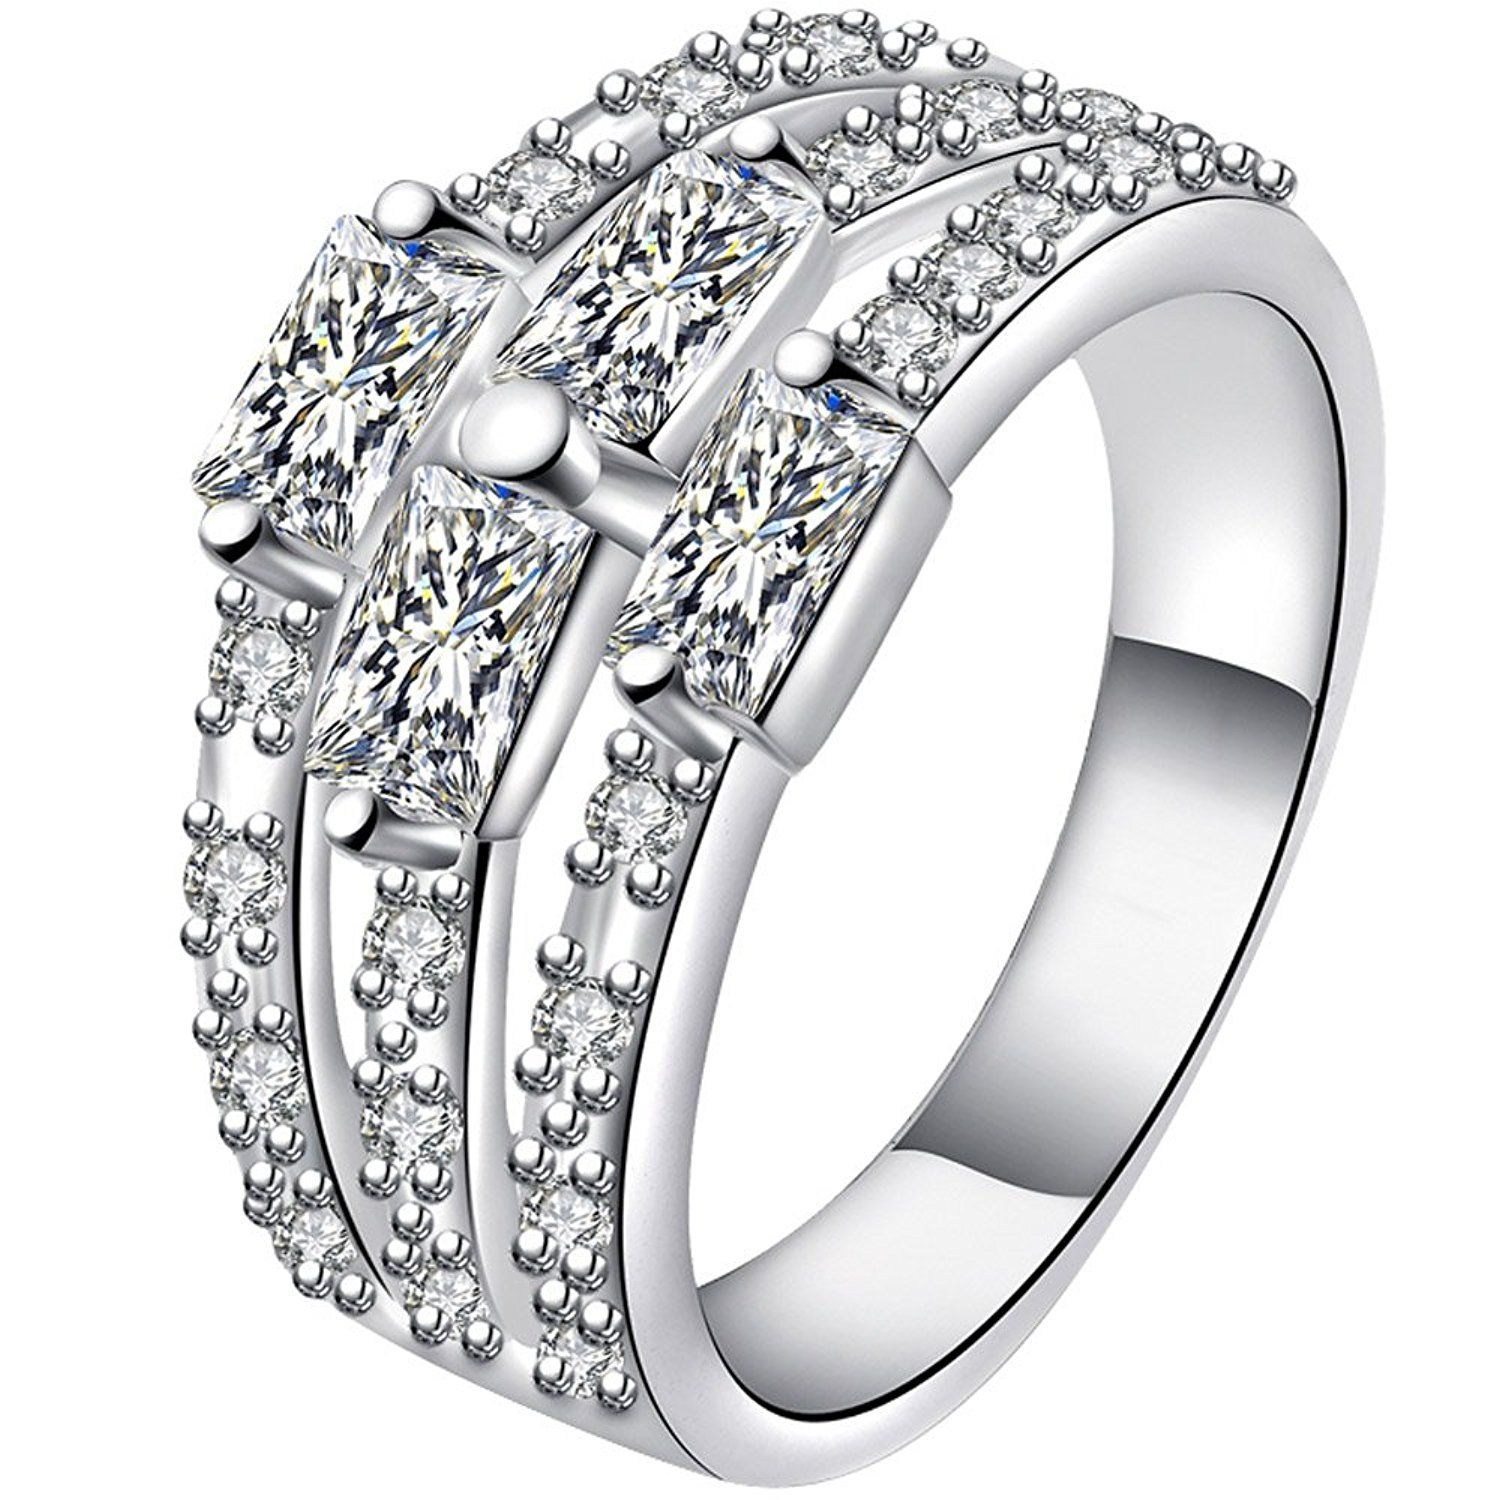 BOHG Jewelry Womens 925 Sterling Silver Plated Cubic